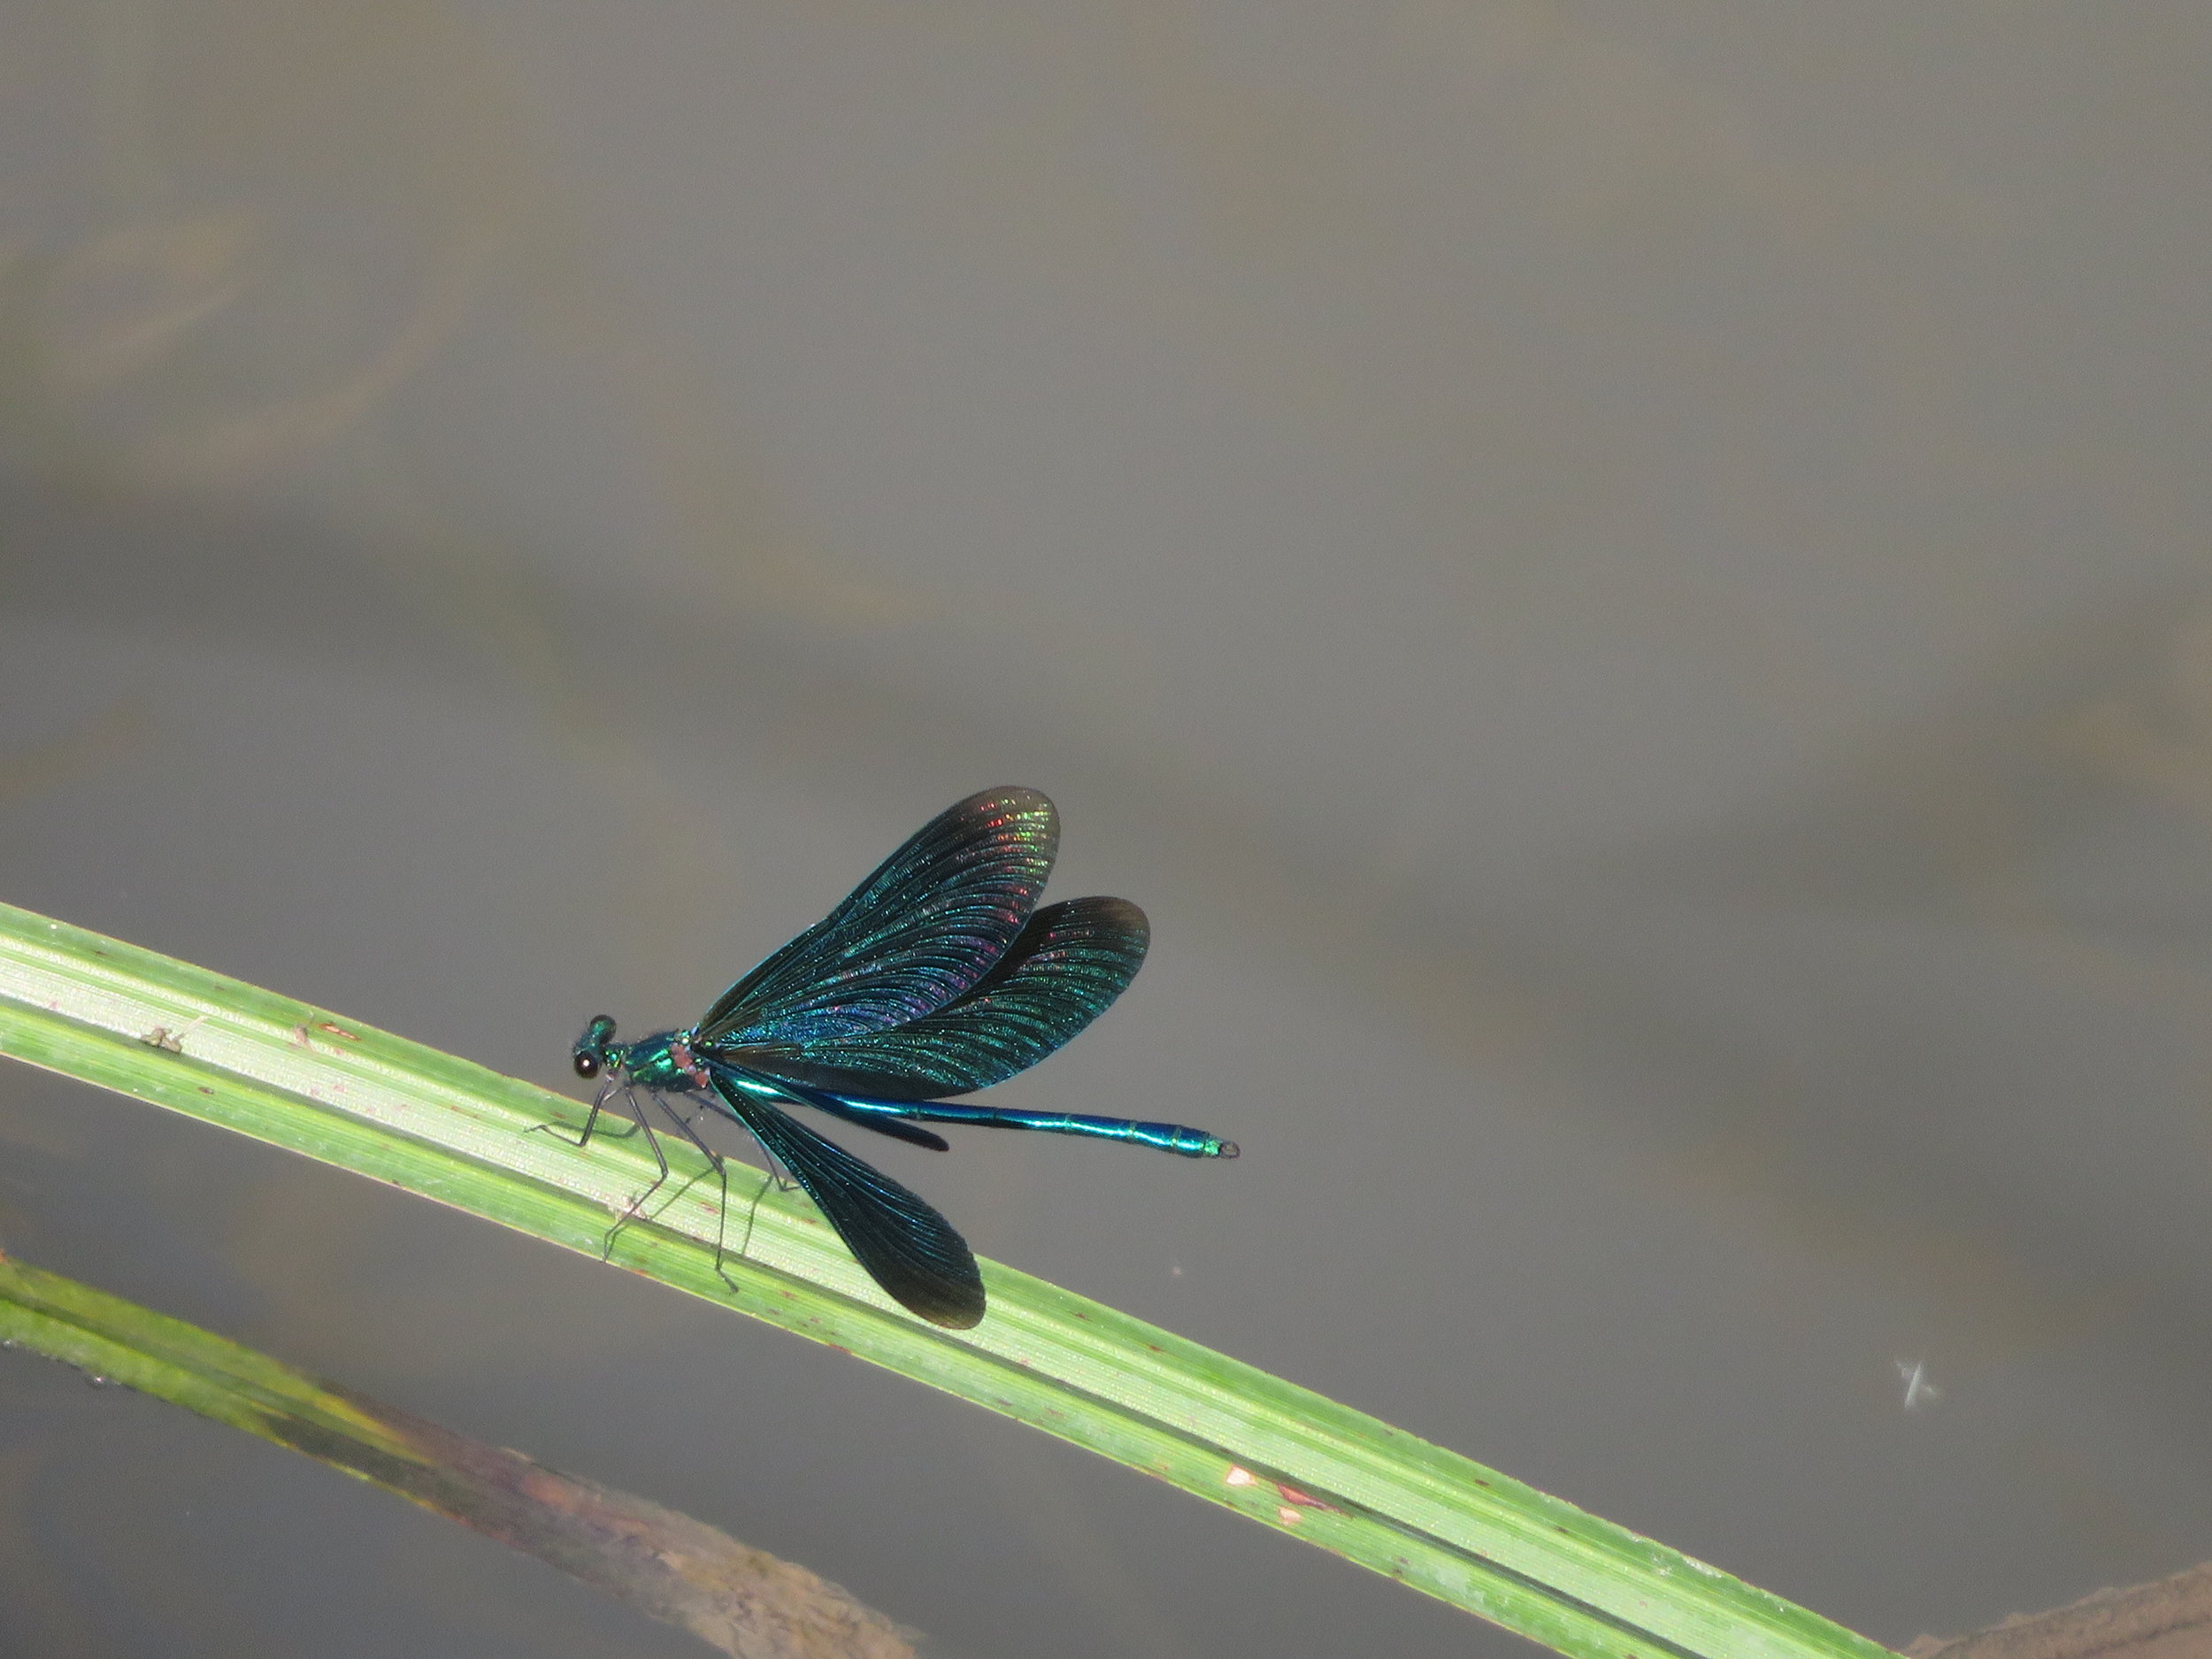 fontenelay-beaujeu_damselfly.JPG